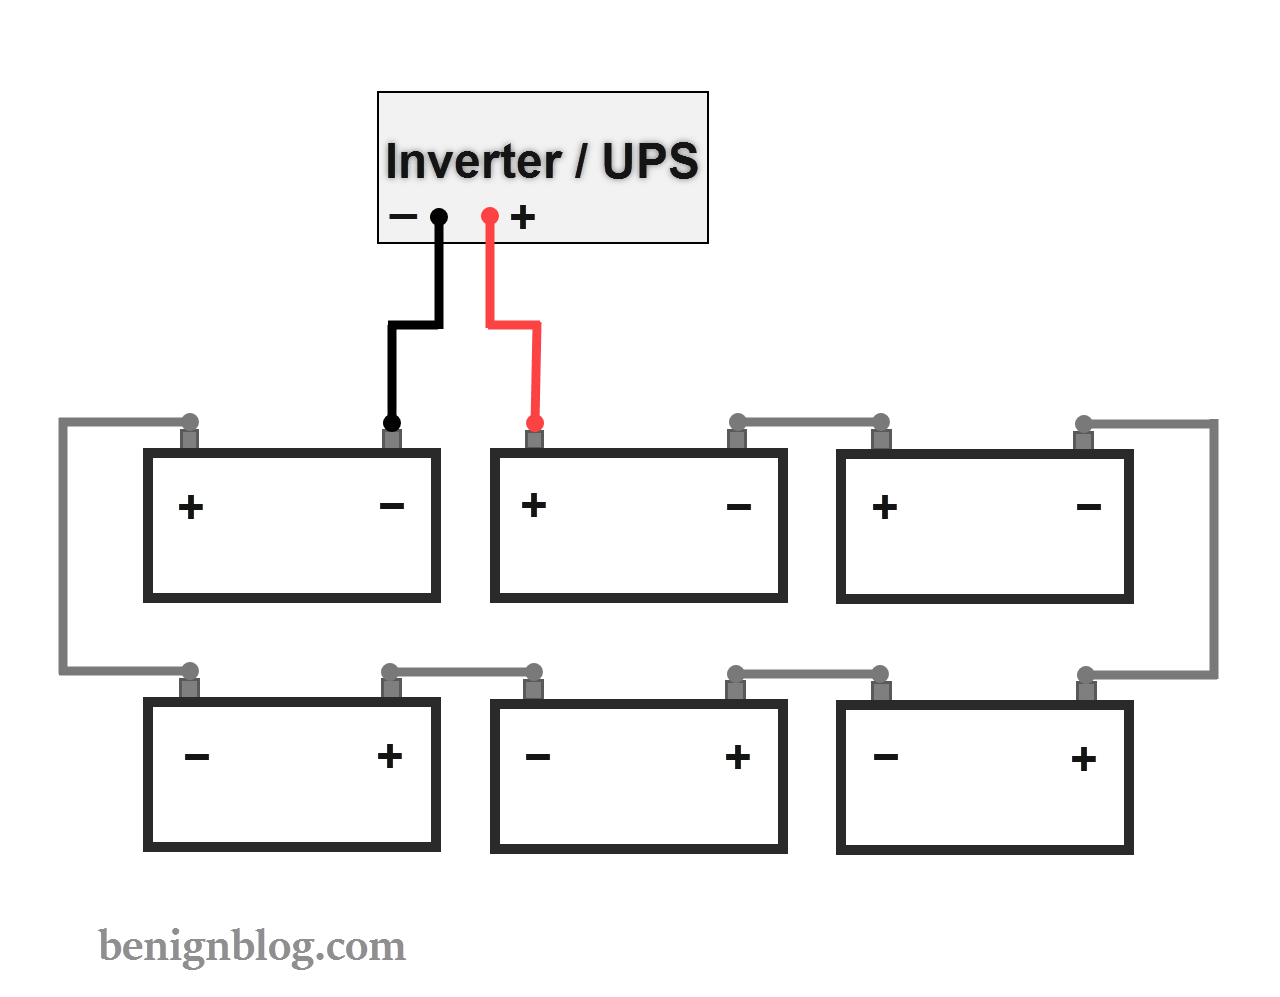 hight resolution of how to connect batteries in series with power inverter or ups wiring diagram for 2 12 volt batteries in series wiring diagram for batteries in series